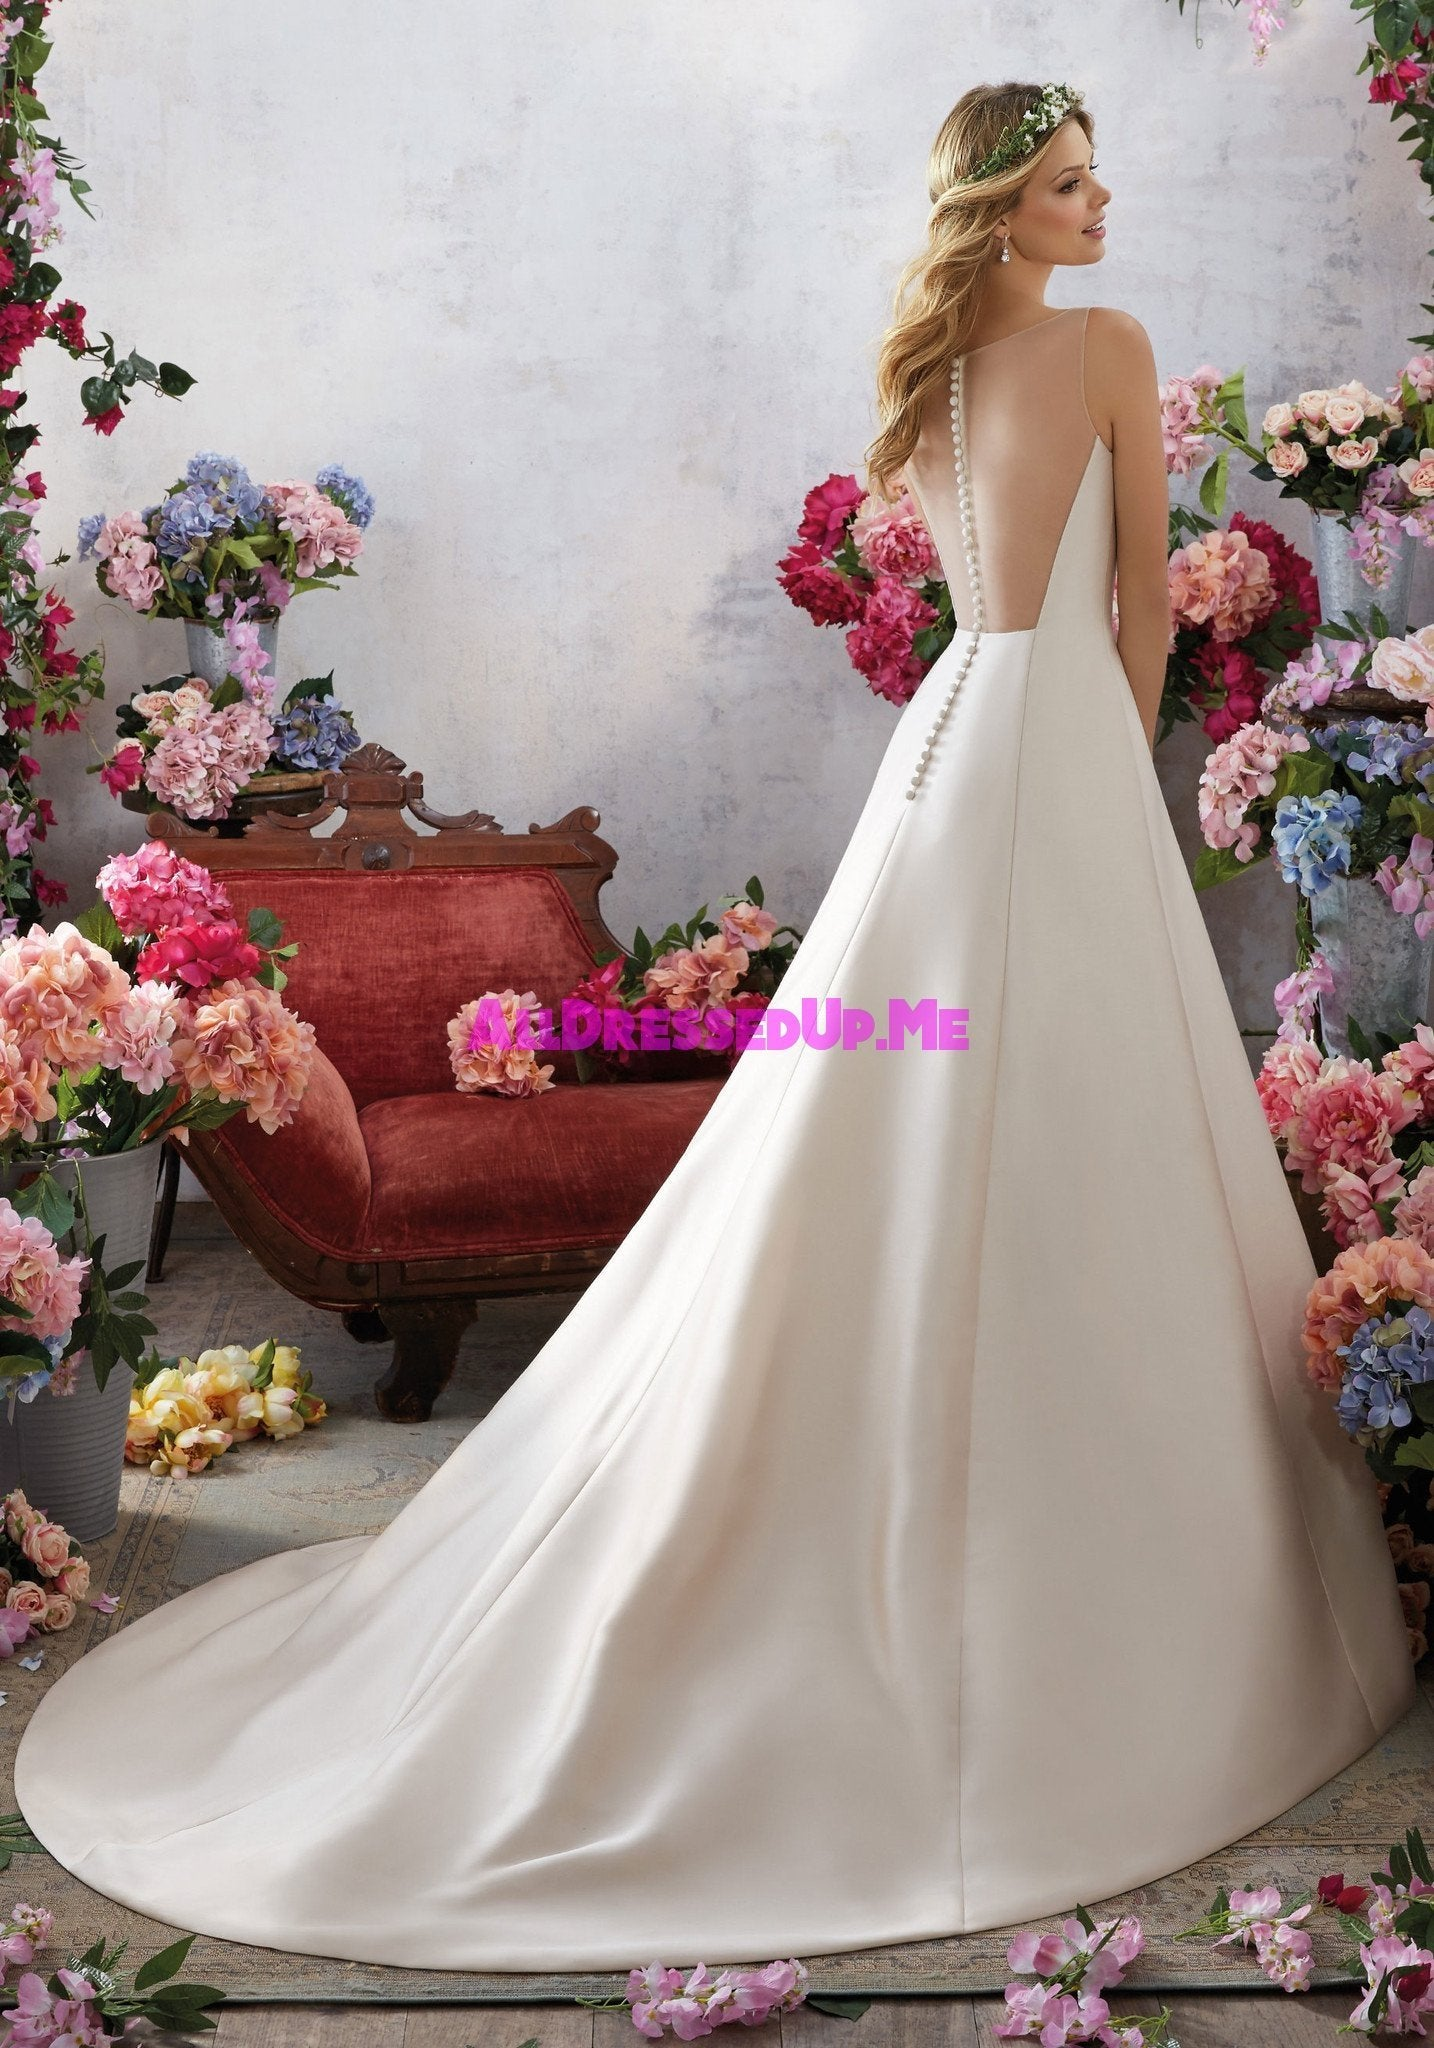 Voyage - Melody - 6858 - All Dressed Up, Bridal Gown - All Dressed ...